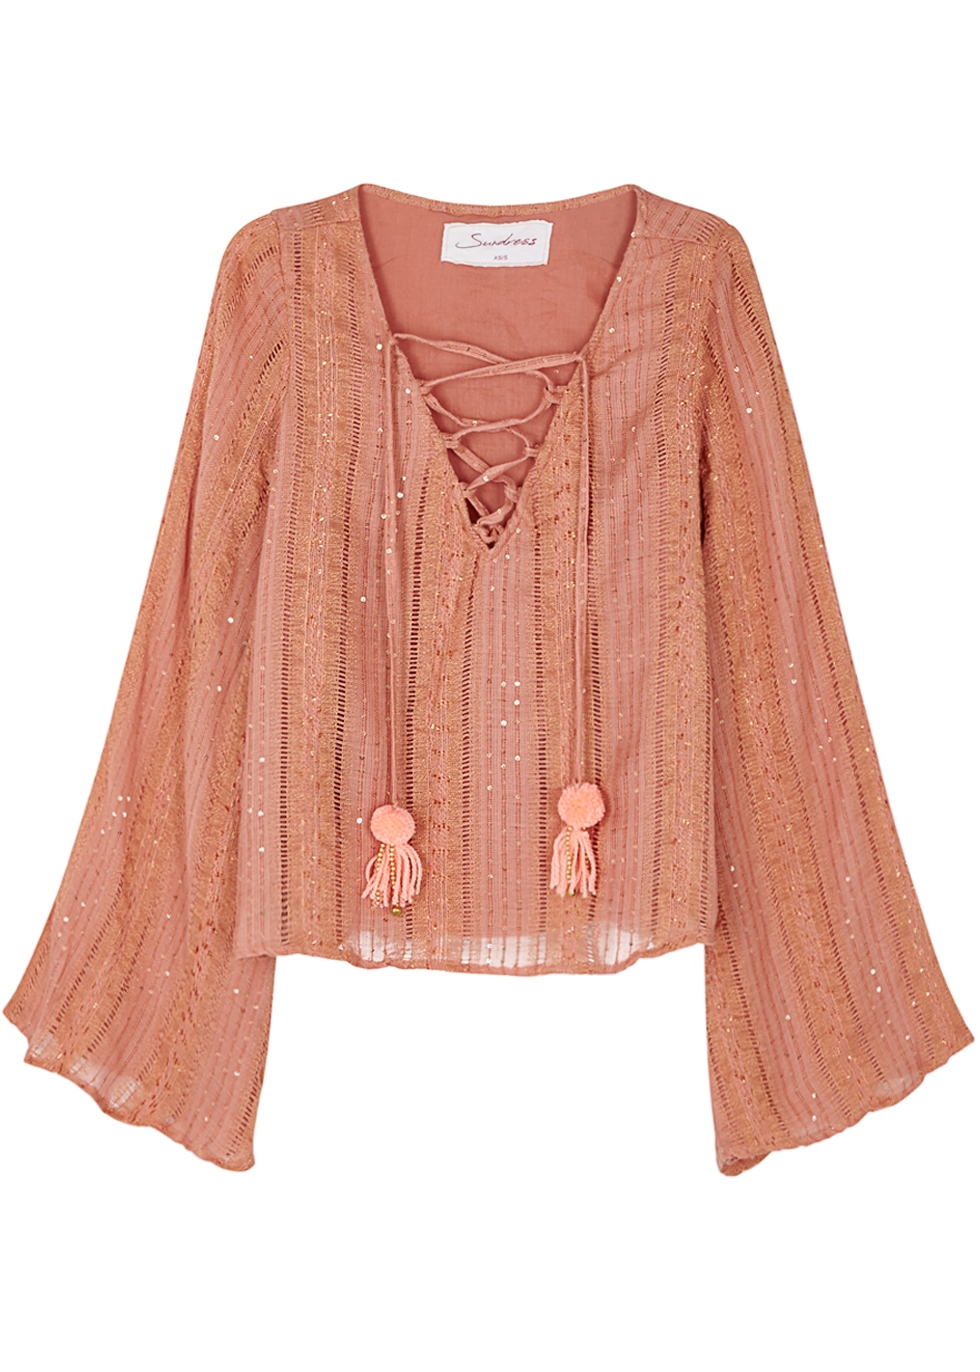 ANAIS APRICOT SEQUIN-EMBELLISHED TOP